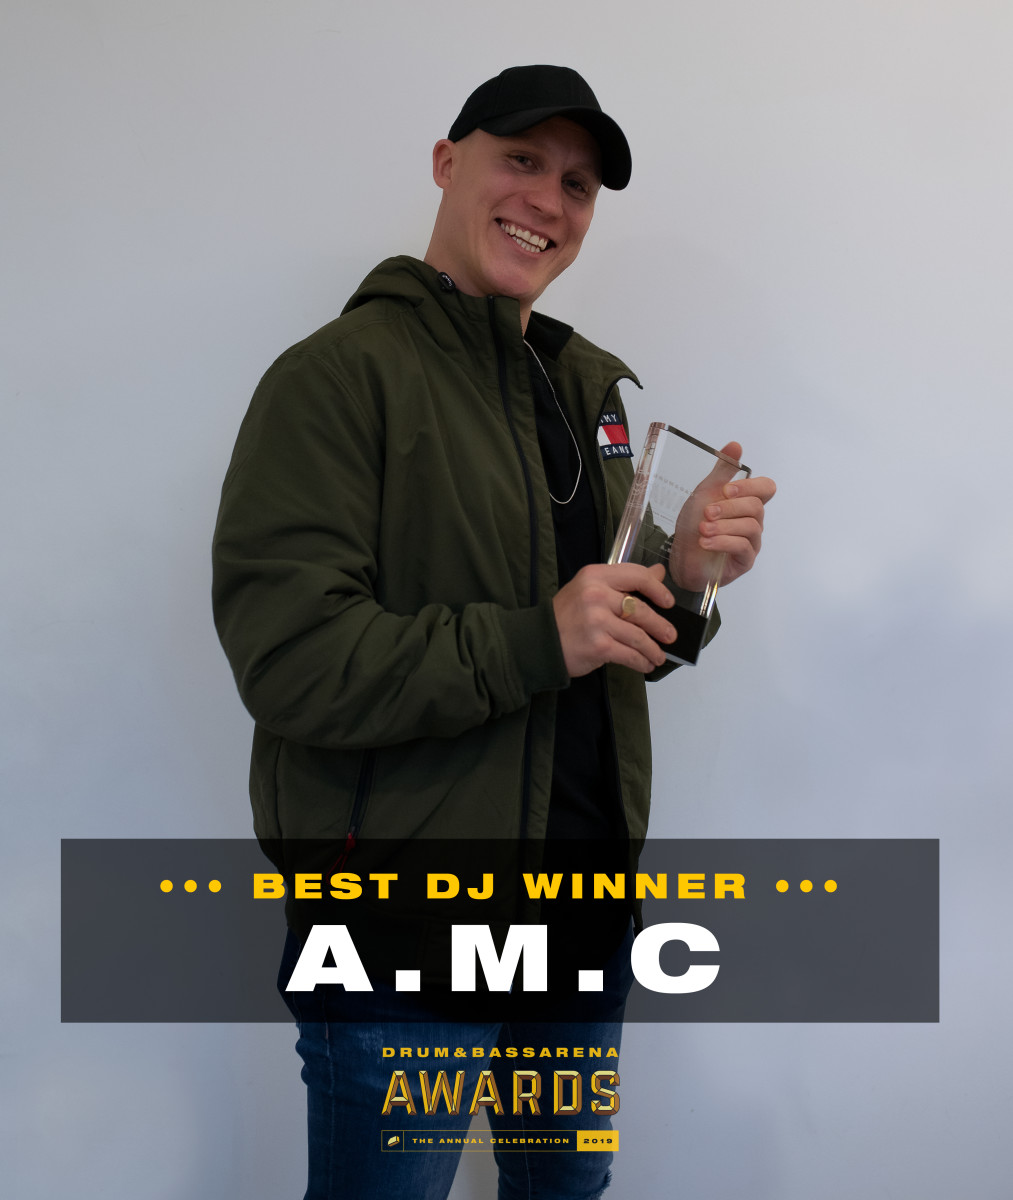 Best DJ Winner A.M.C